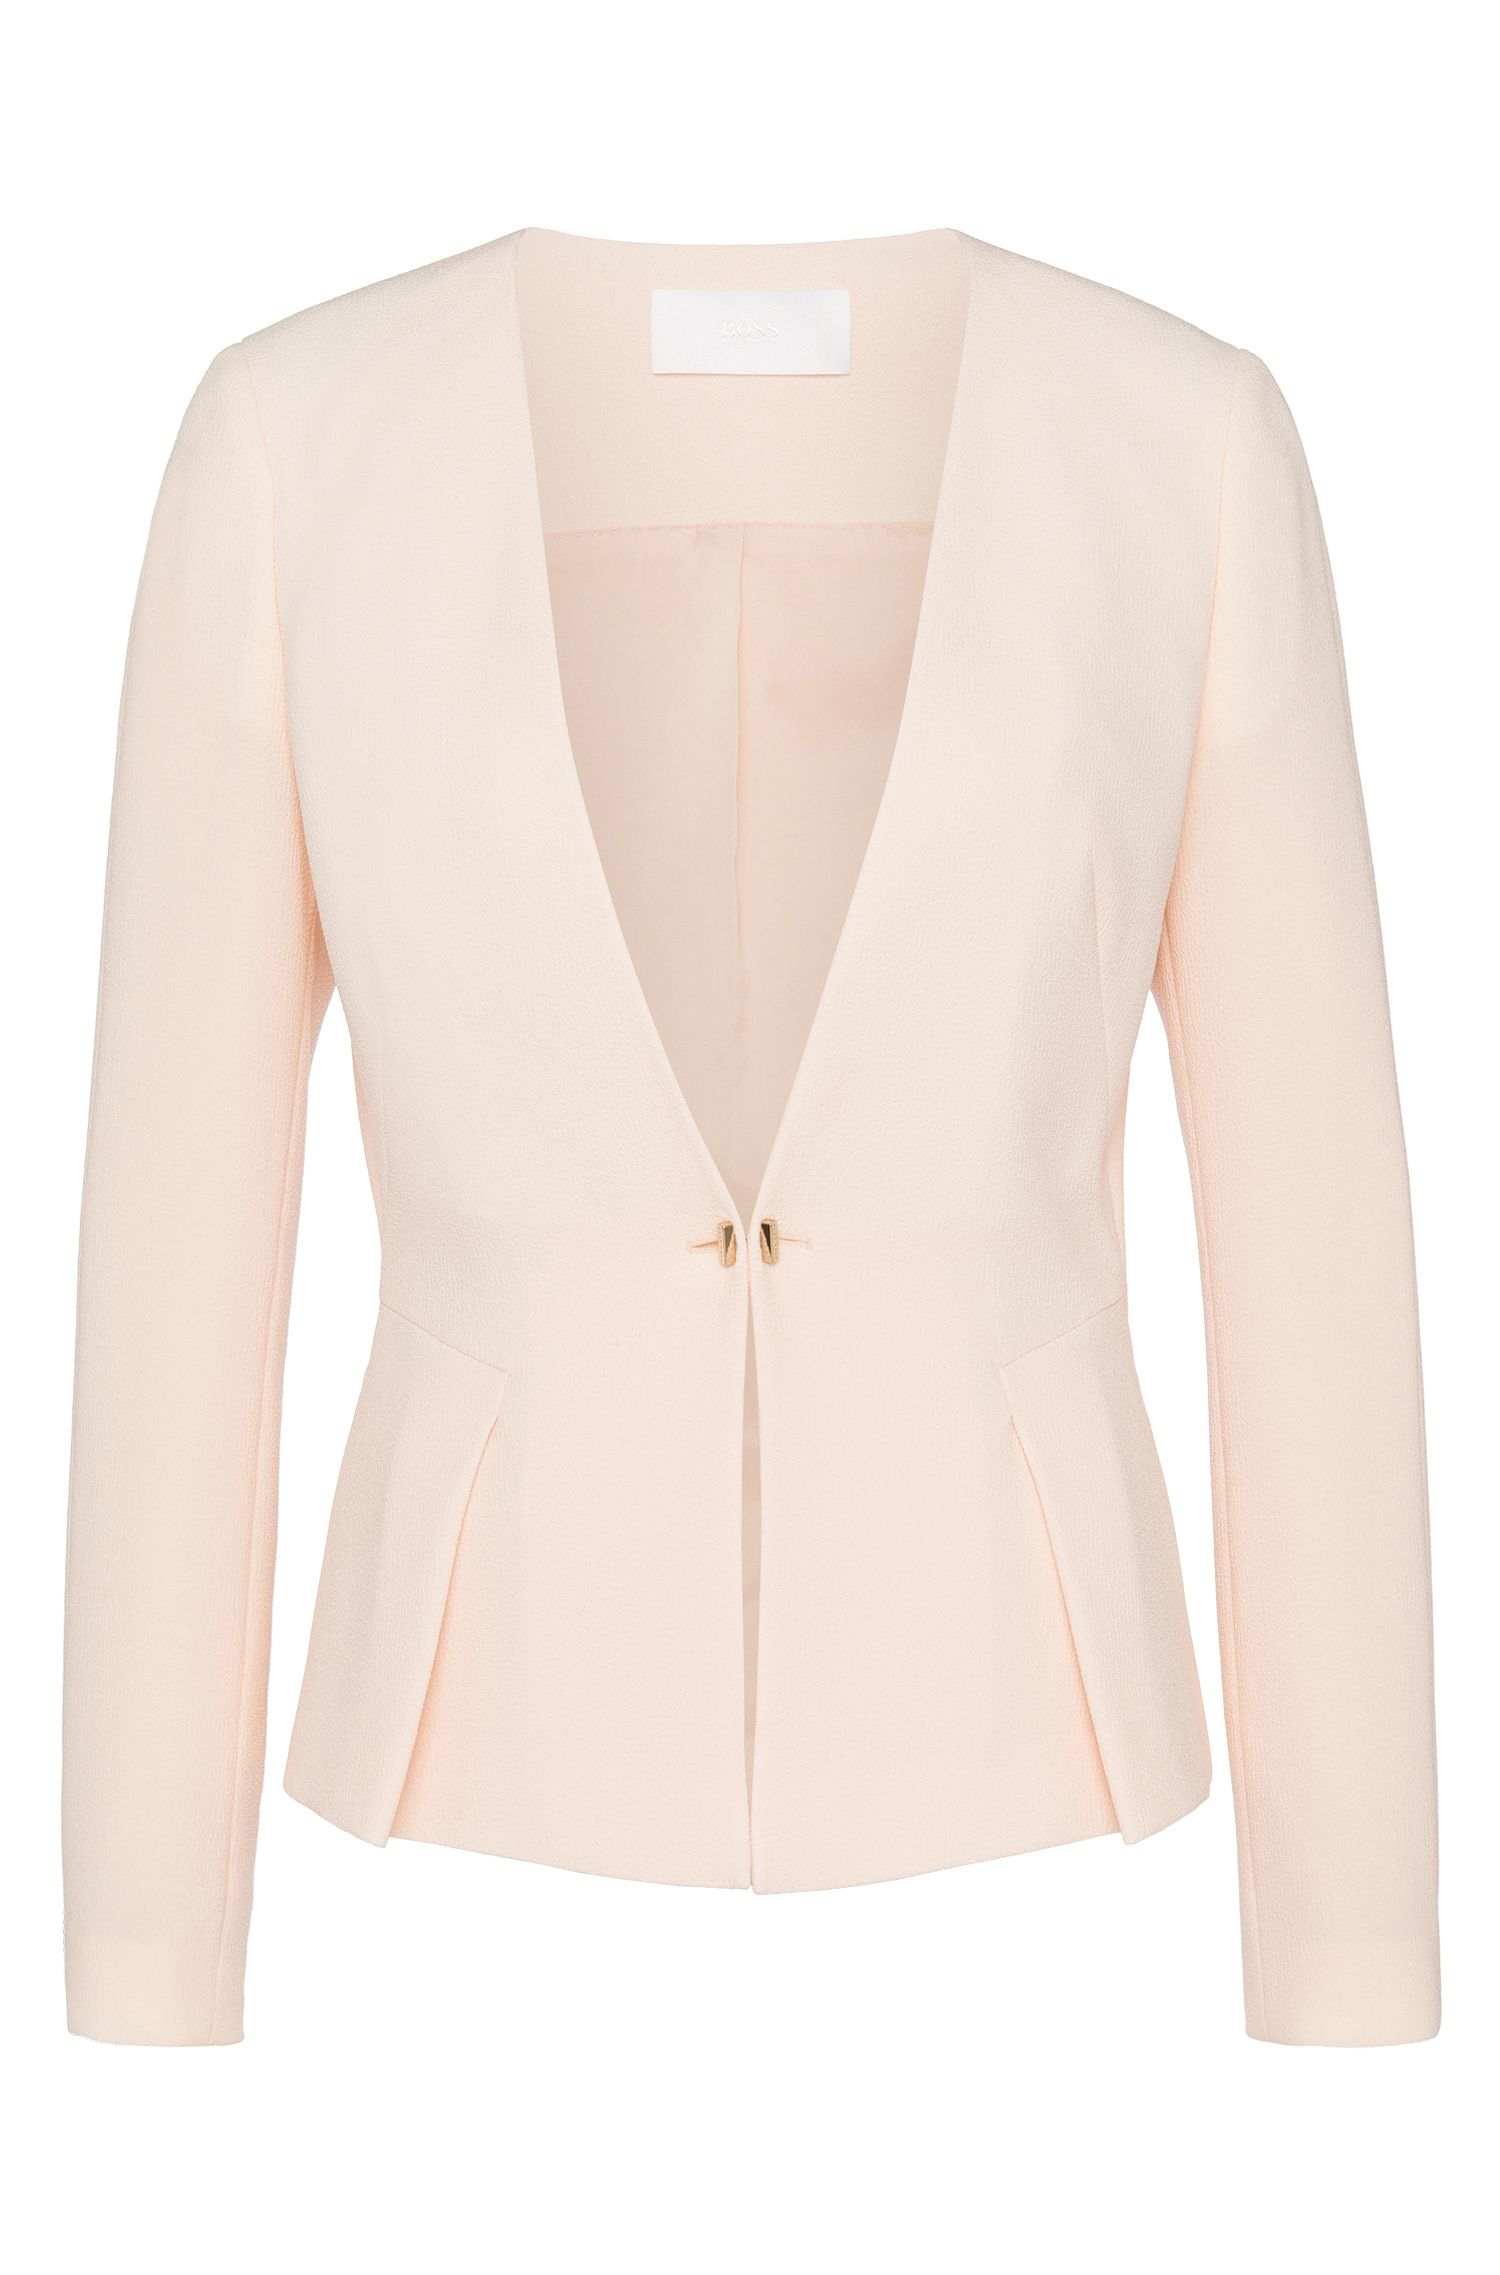 'Jaforma' | Crepe One-Button Blazer